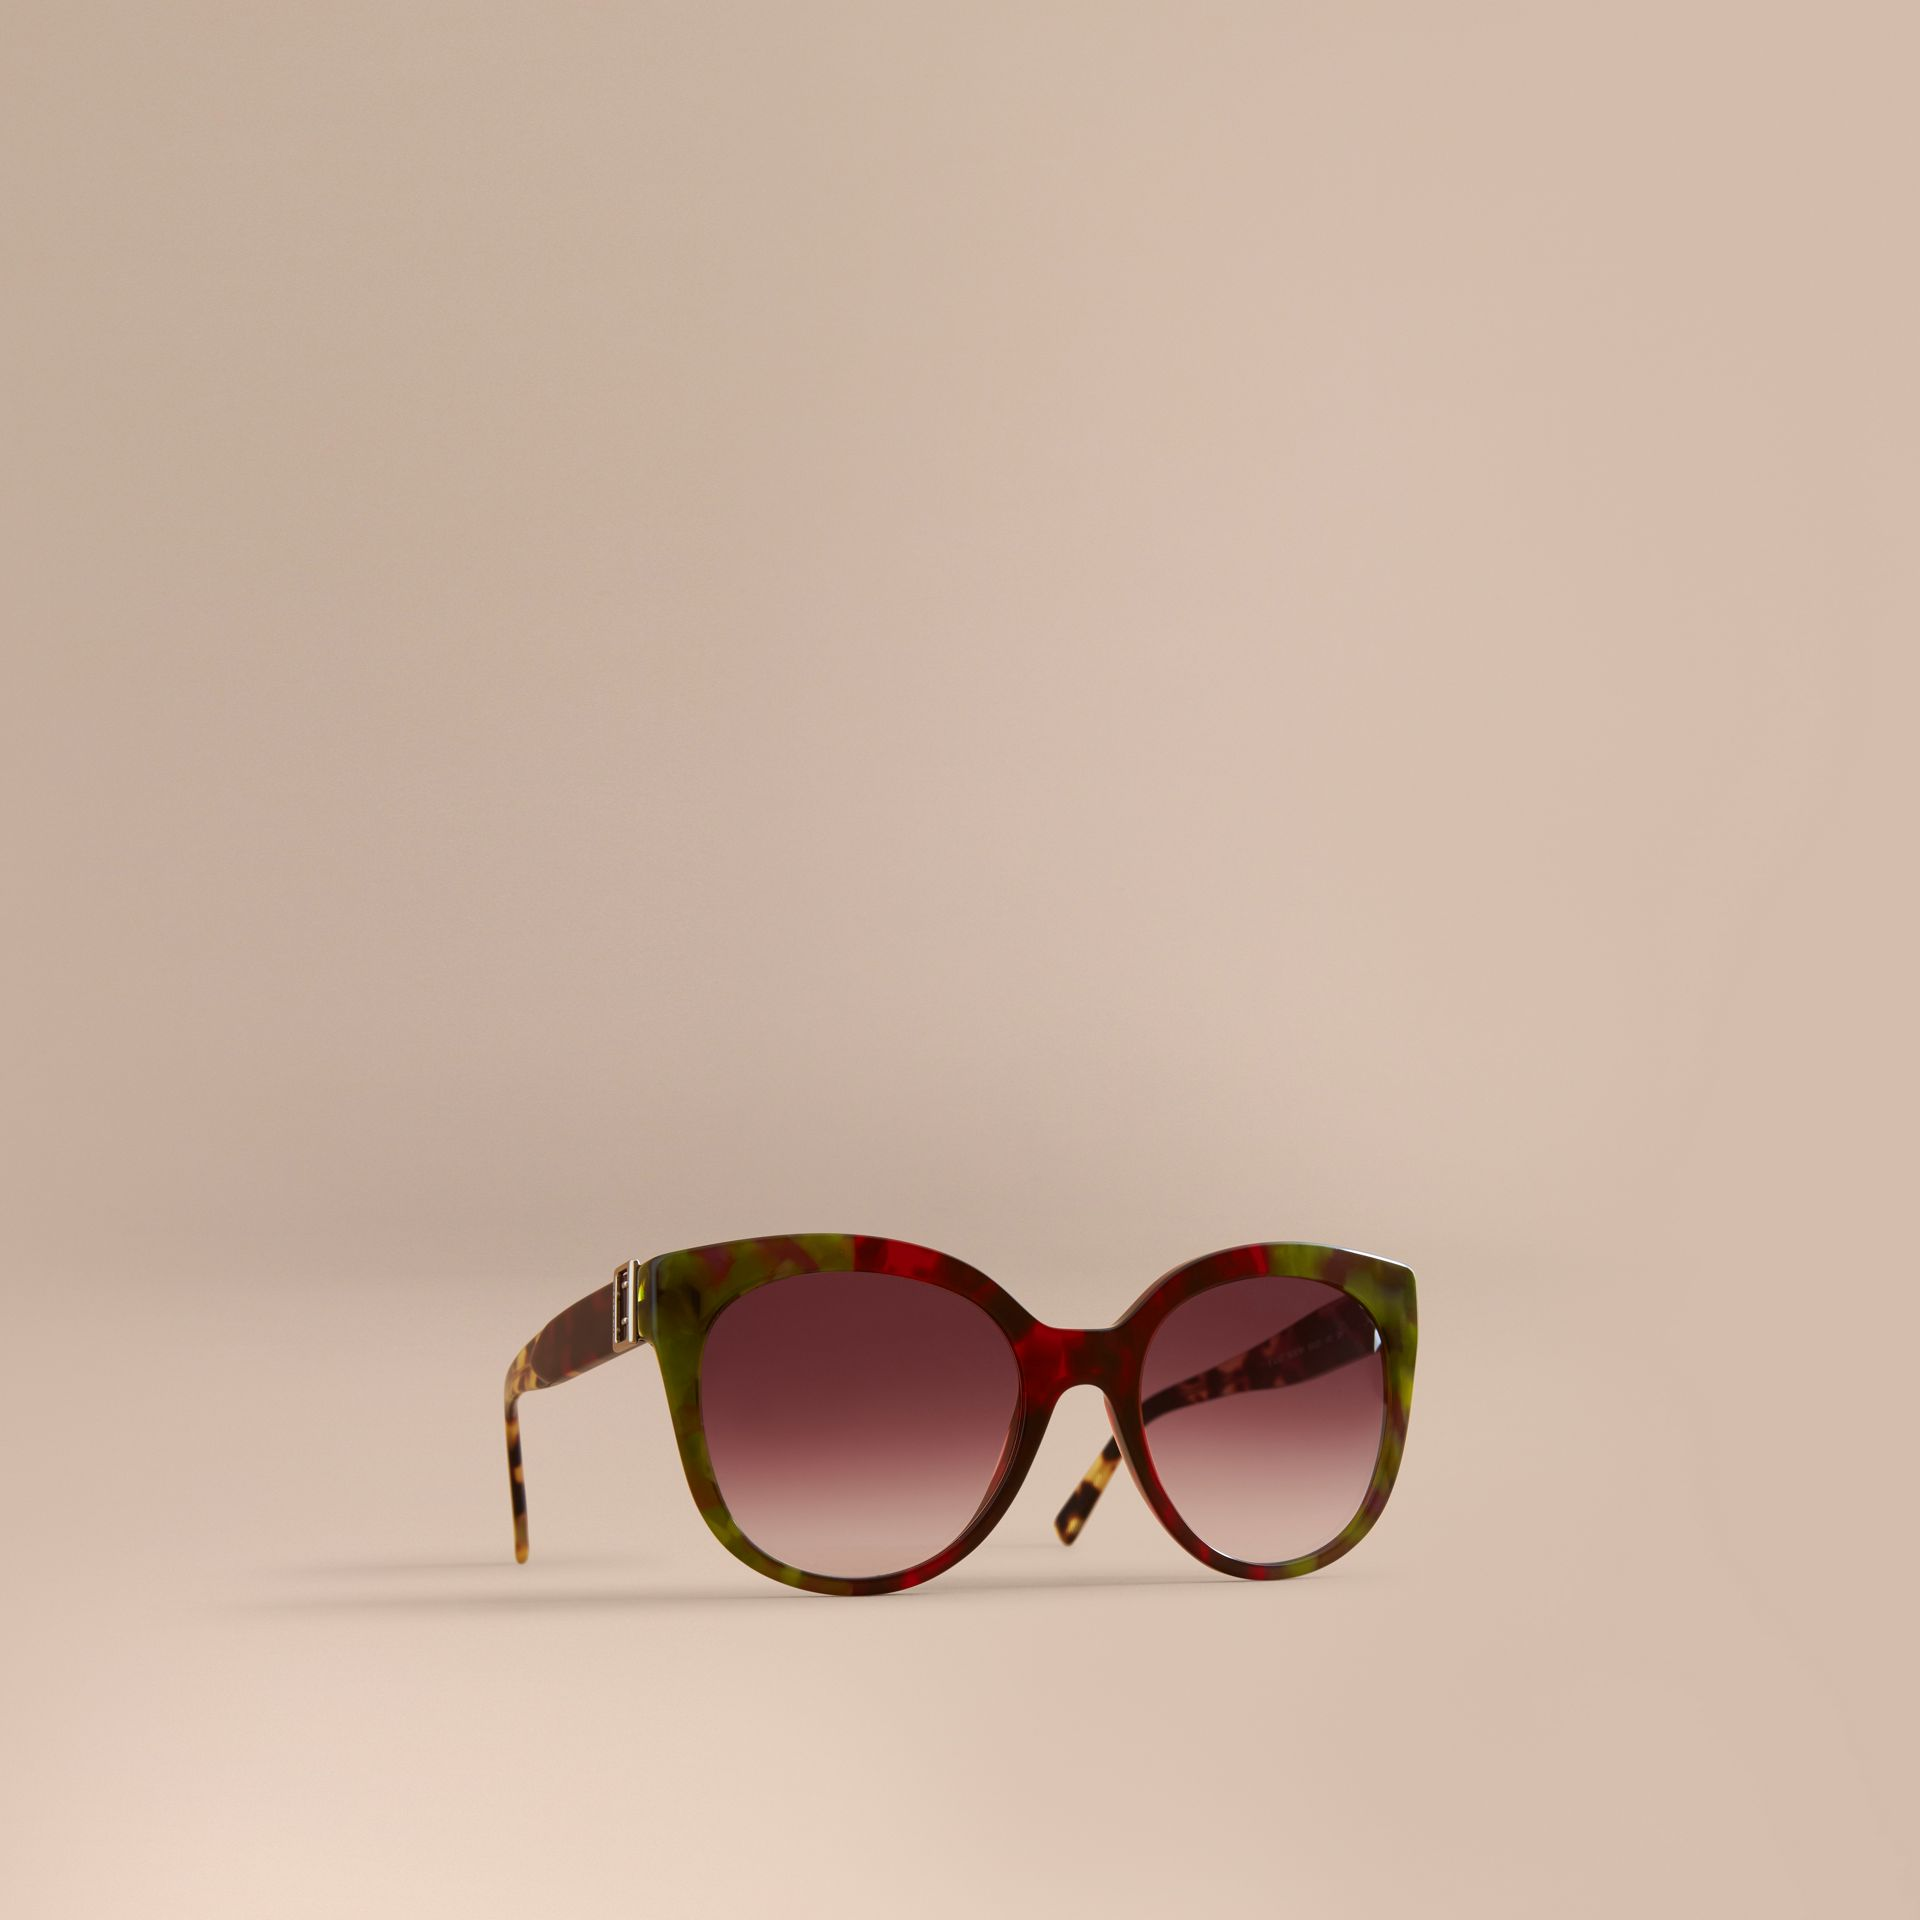 Buckle Detail Cat-eye Frame Sunglasses in Cardinal Red - Women | Burberry Hong Kong - gallery image 0